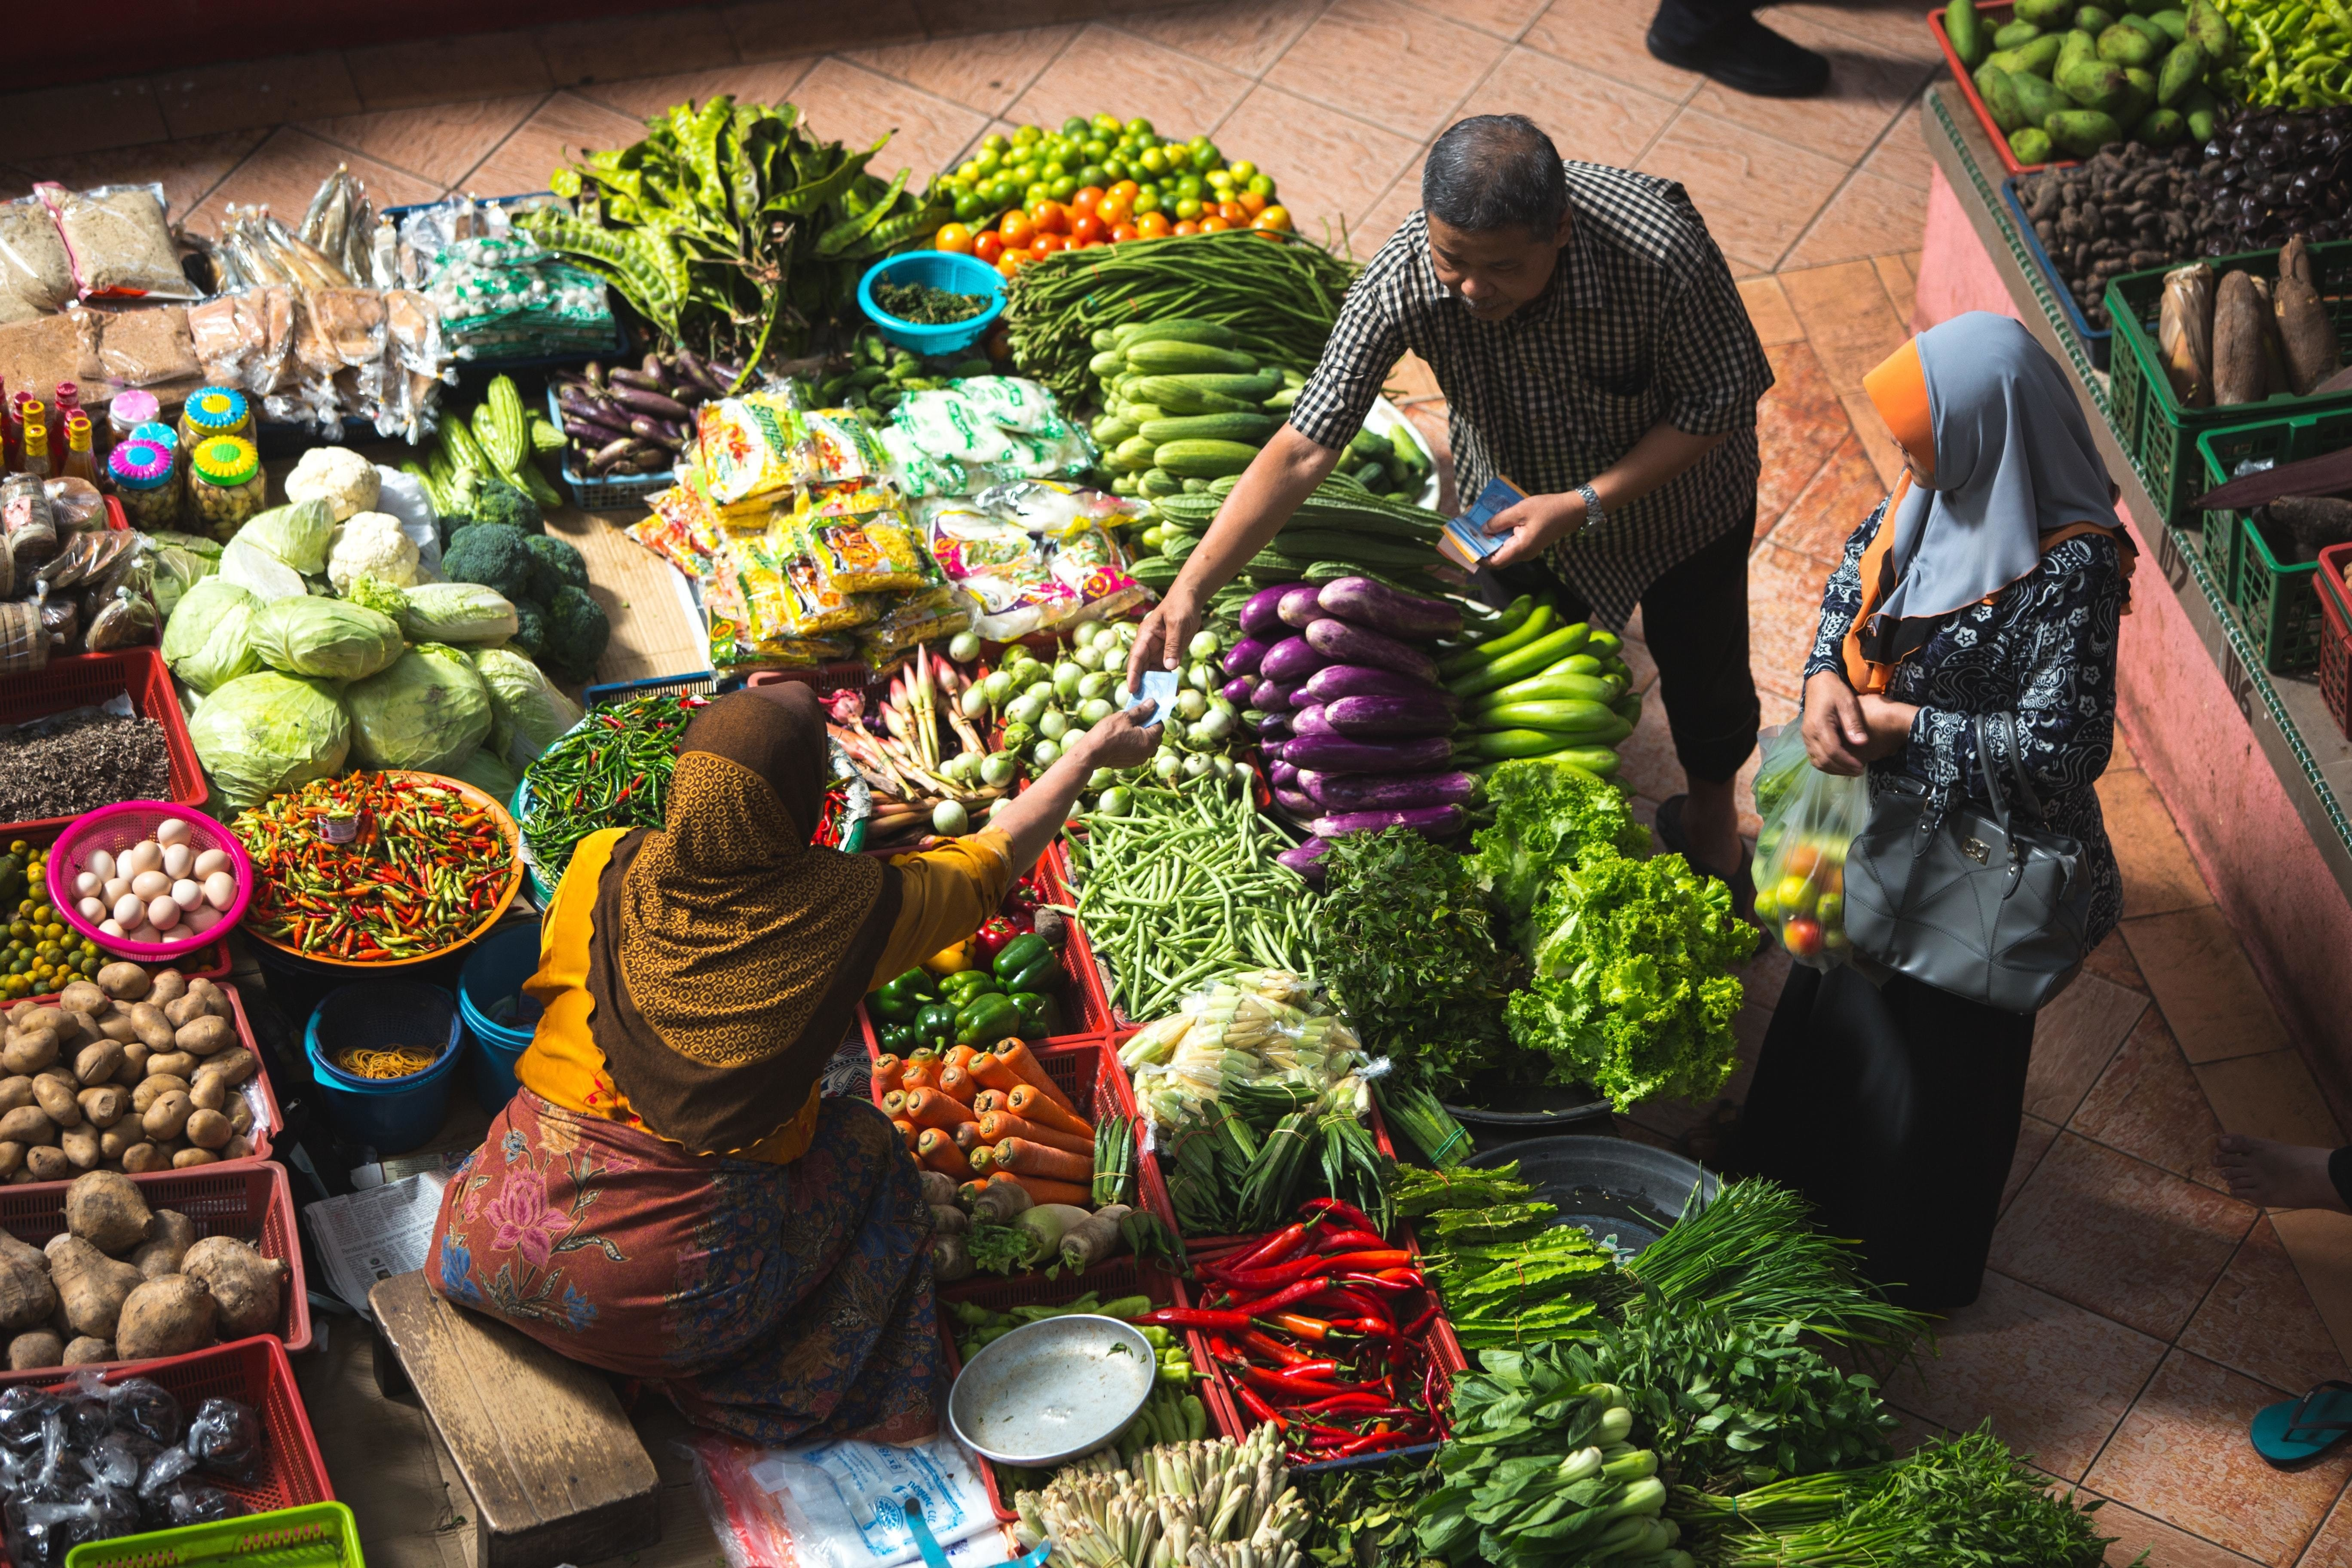 Food production is among the largest contributors to climate change.